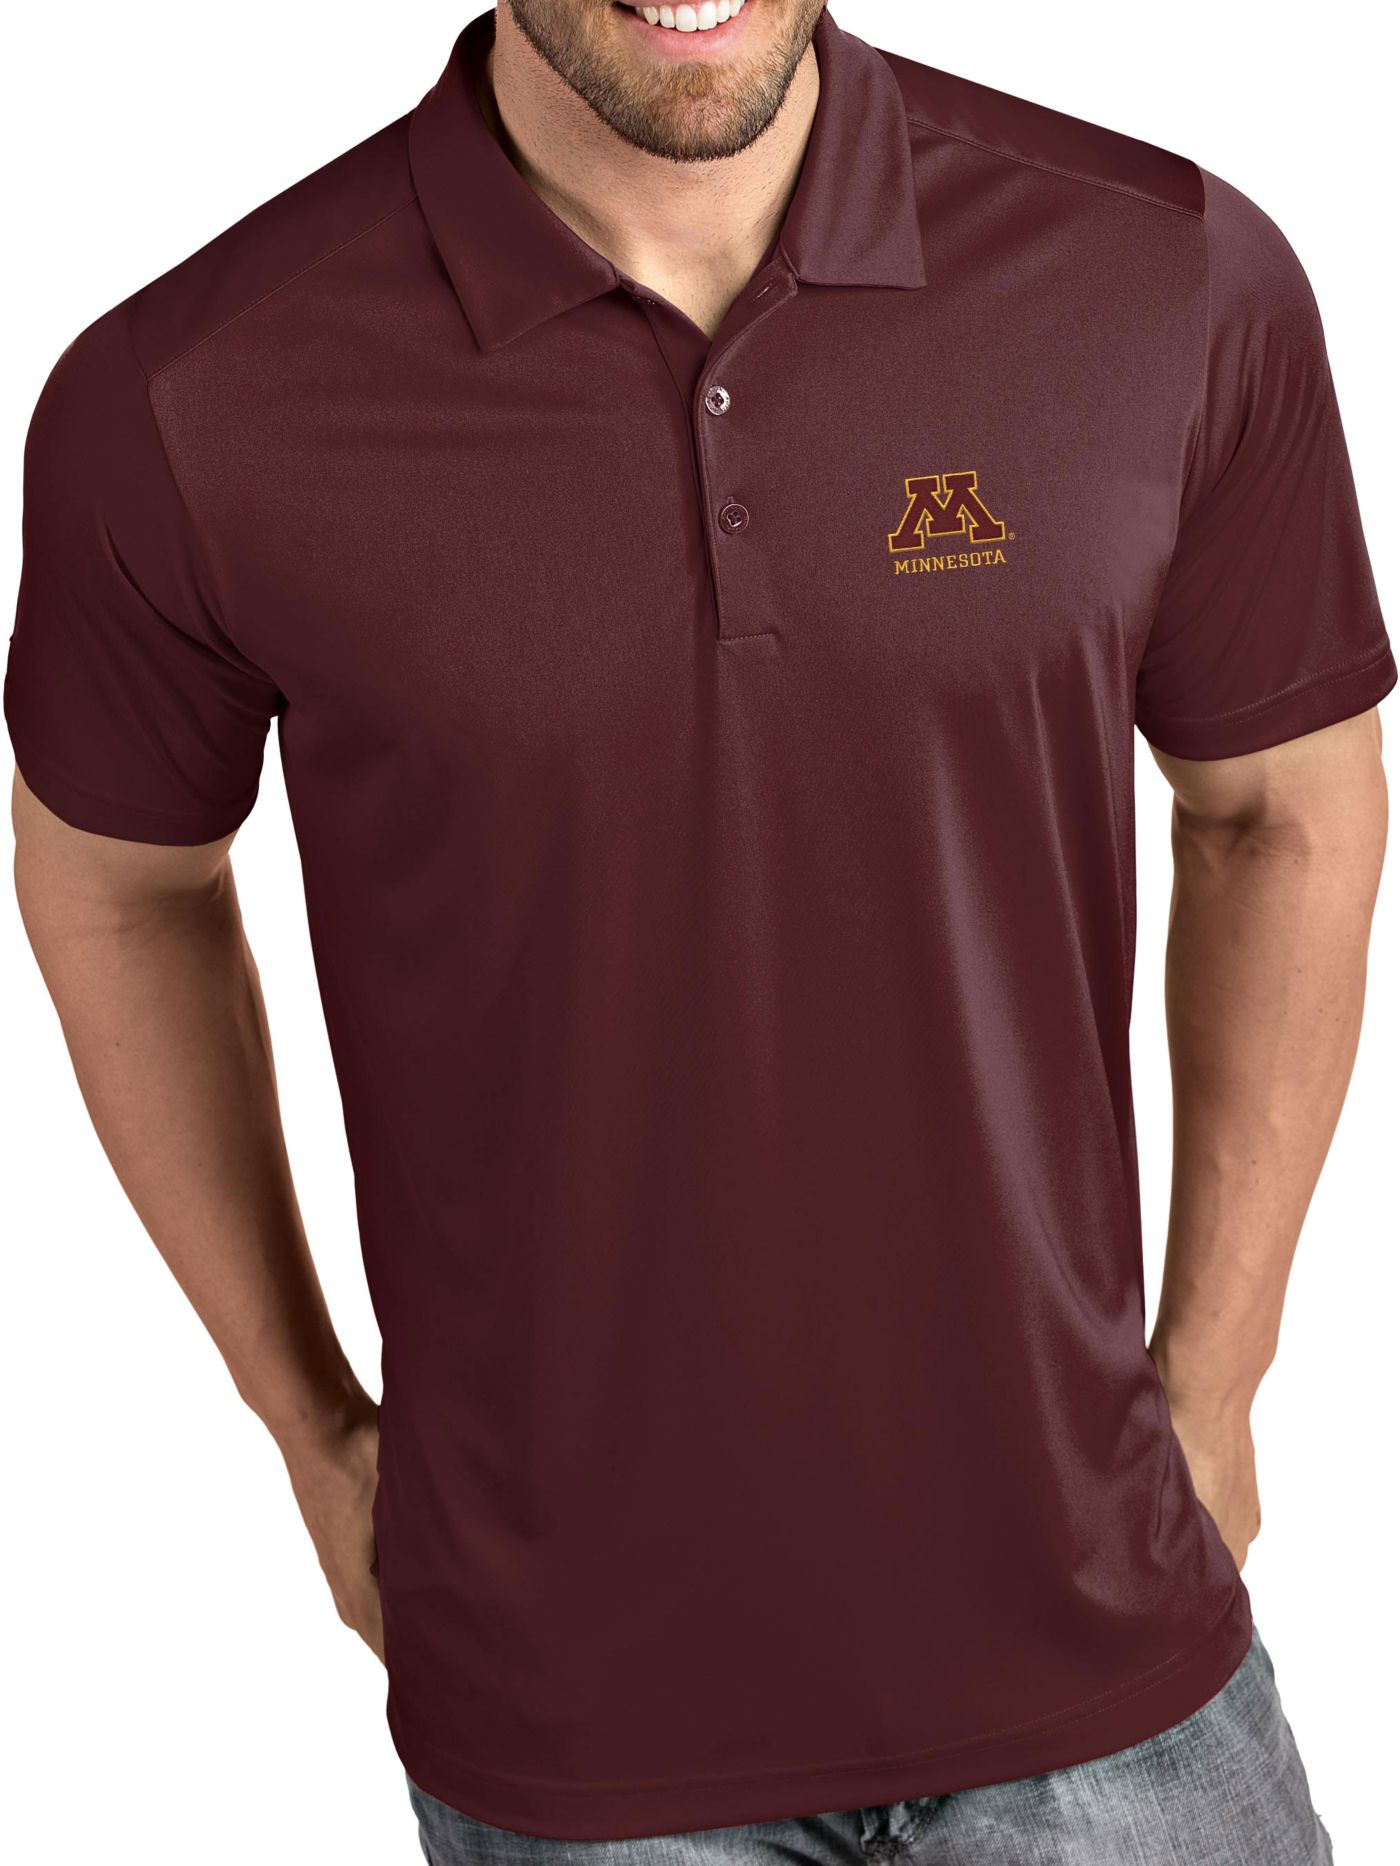 Antigua Men's Minnesota Golden Gophers Maroon Tribute Performance Polo